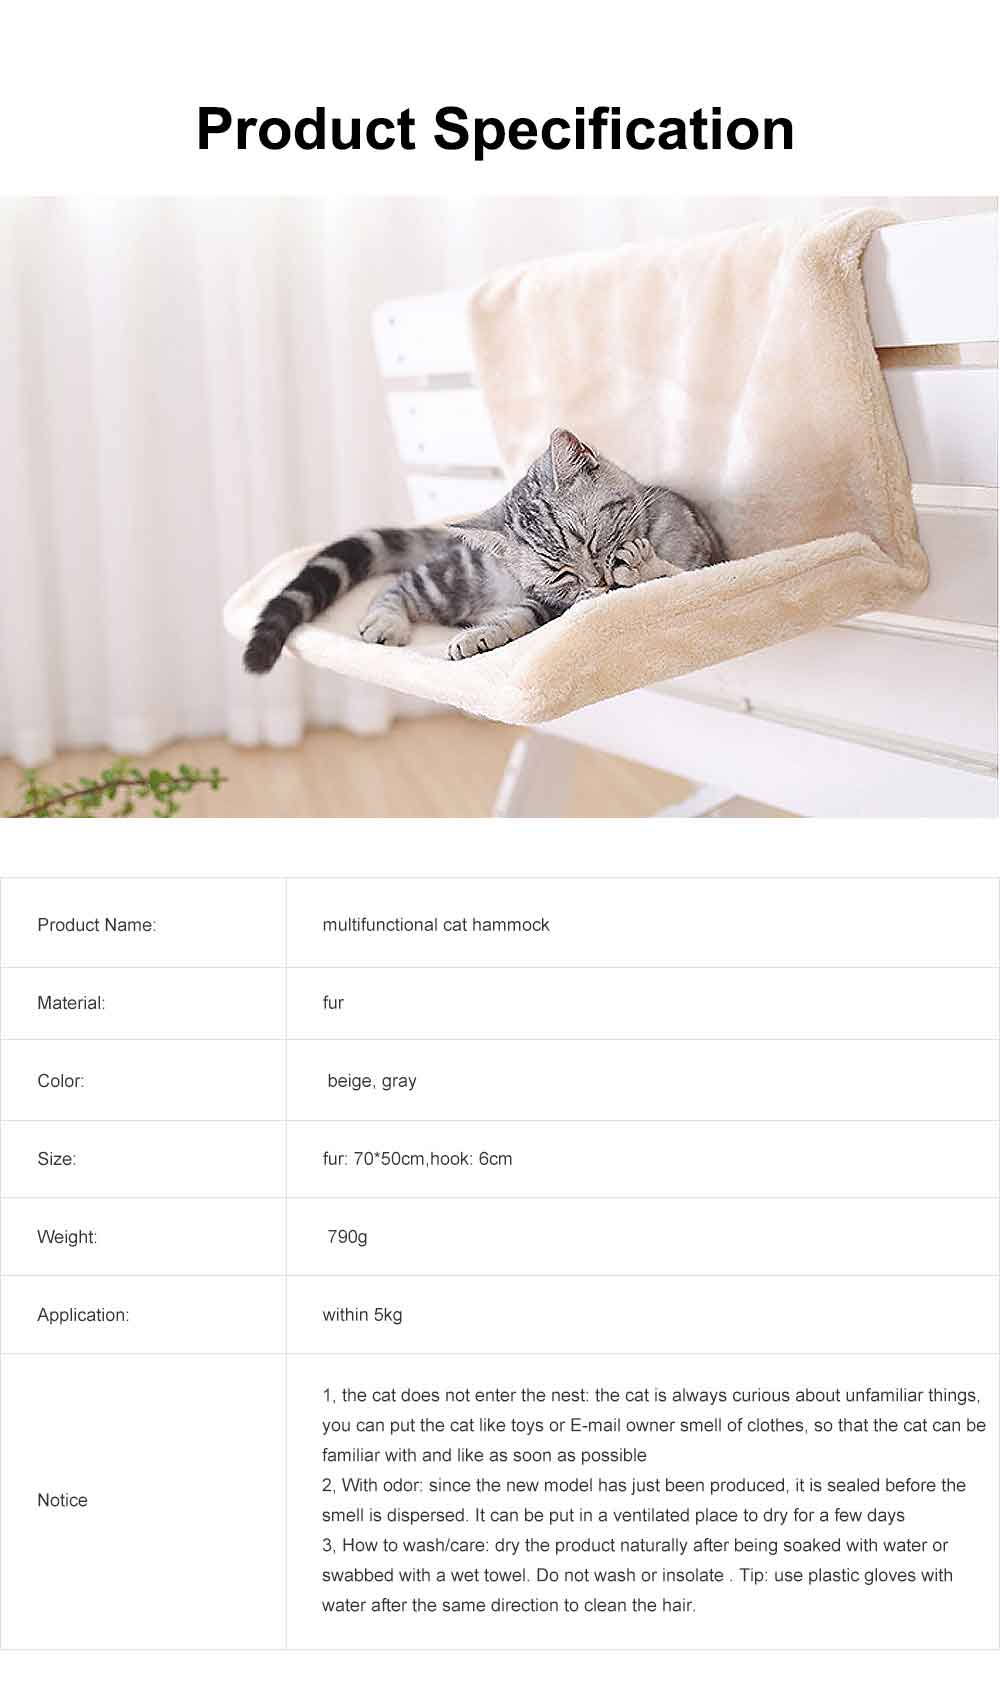 Multifunctional Cat Hammock with Support, Portable & Removable Cat Mat Hanging Chair 6